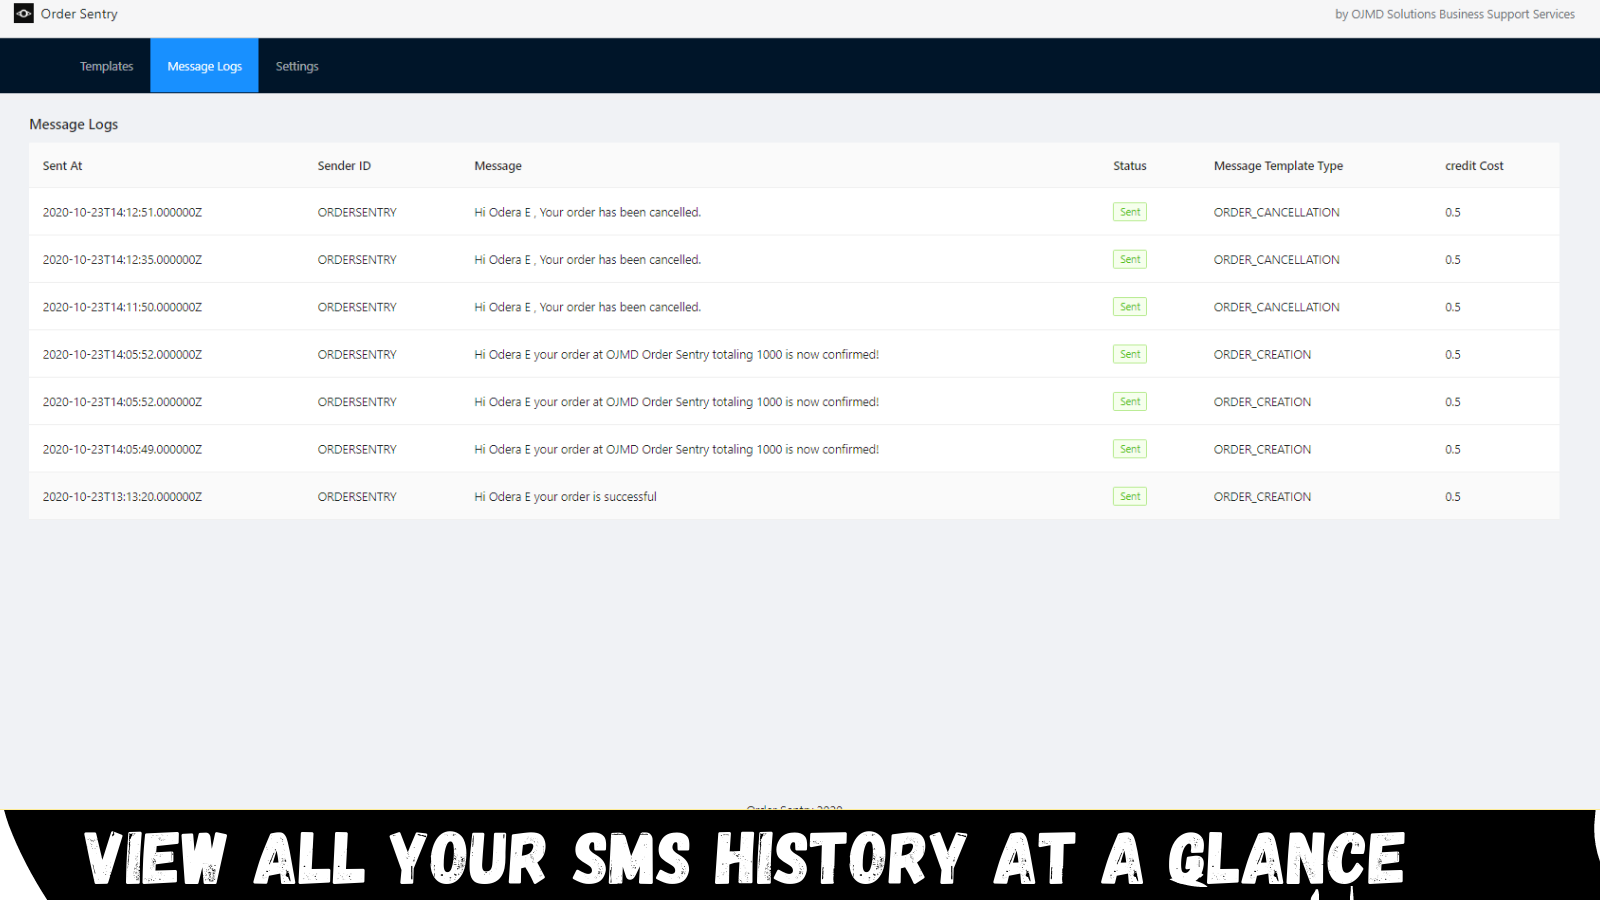 SMS history